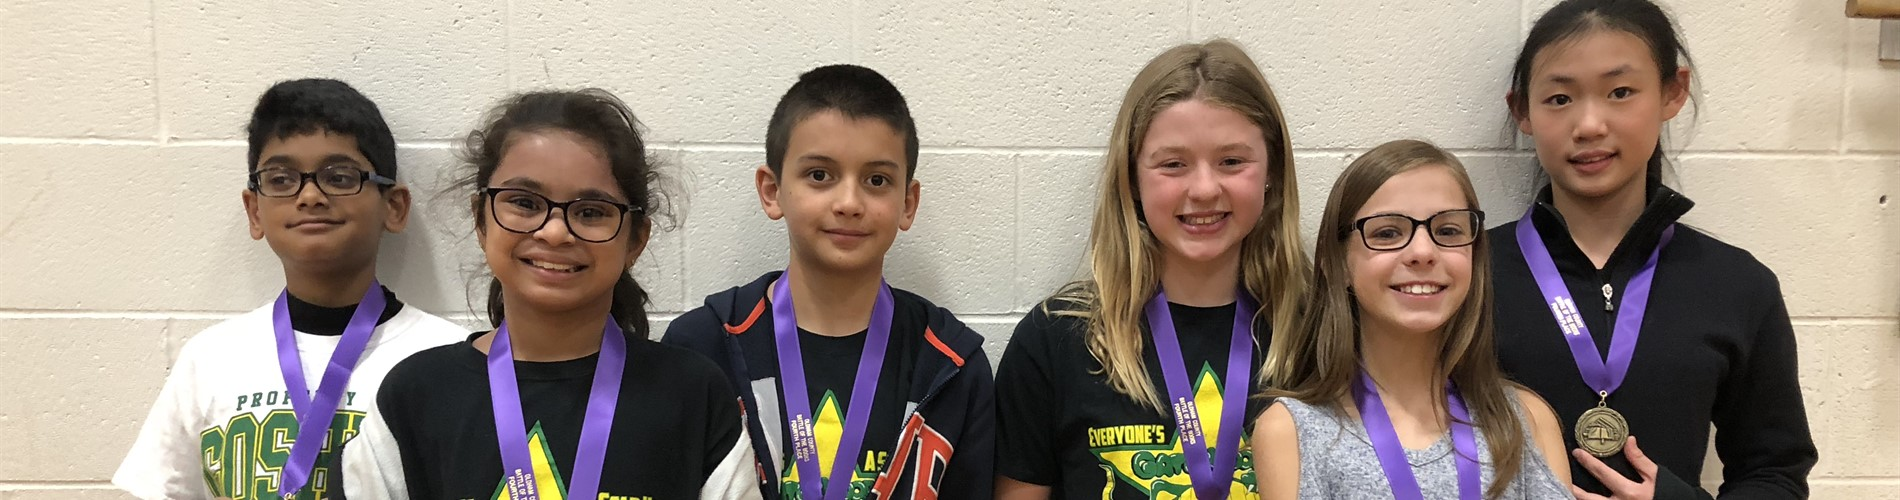 5th grade district battle of the books team